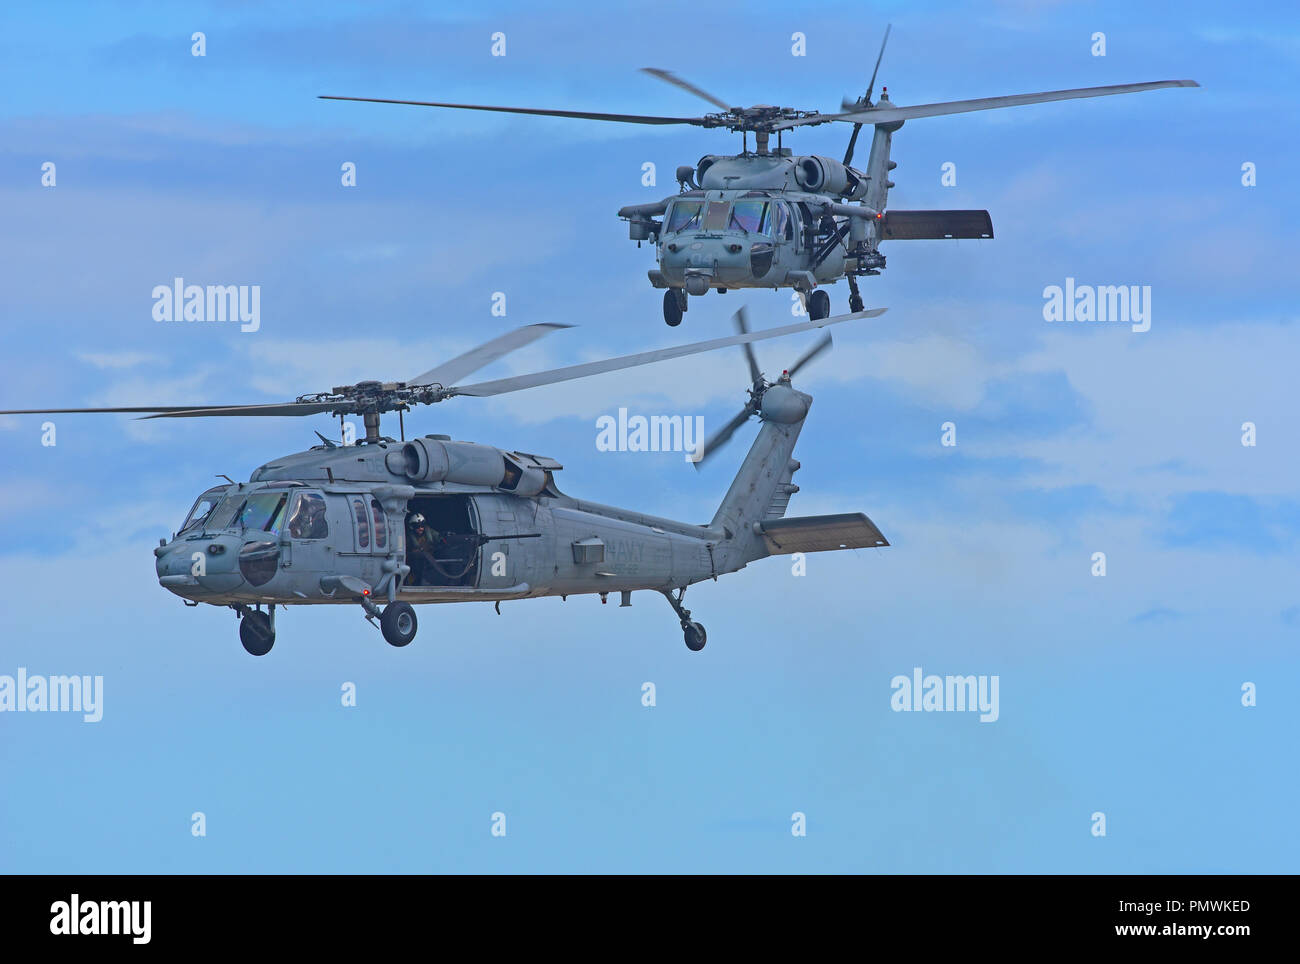 USNAVY MH-60 Seahawk helicopter on gunnery training exercise at Tain range, flying out from the RAF base at Lossiemouth in Moray, Scotland. Stock Photo